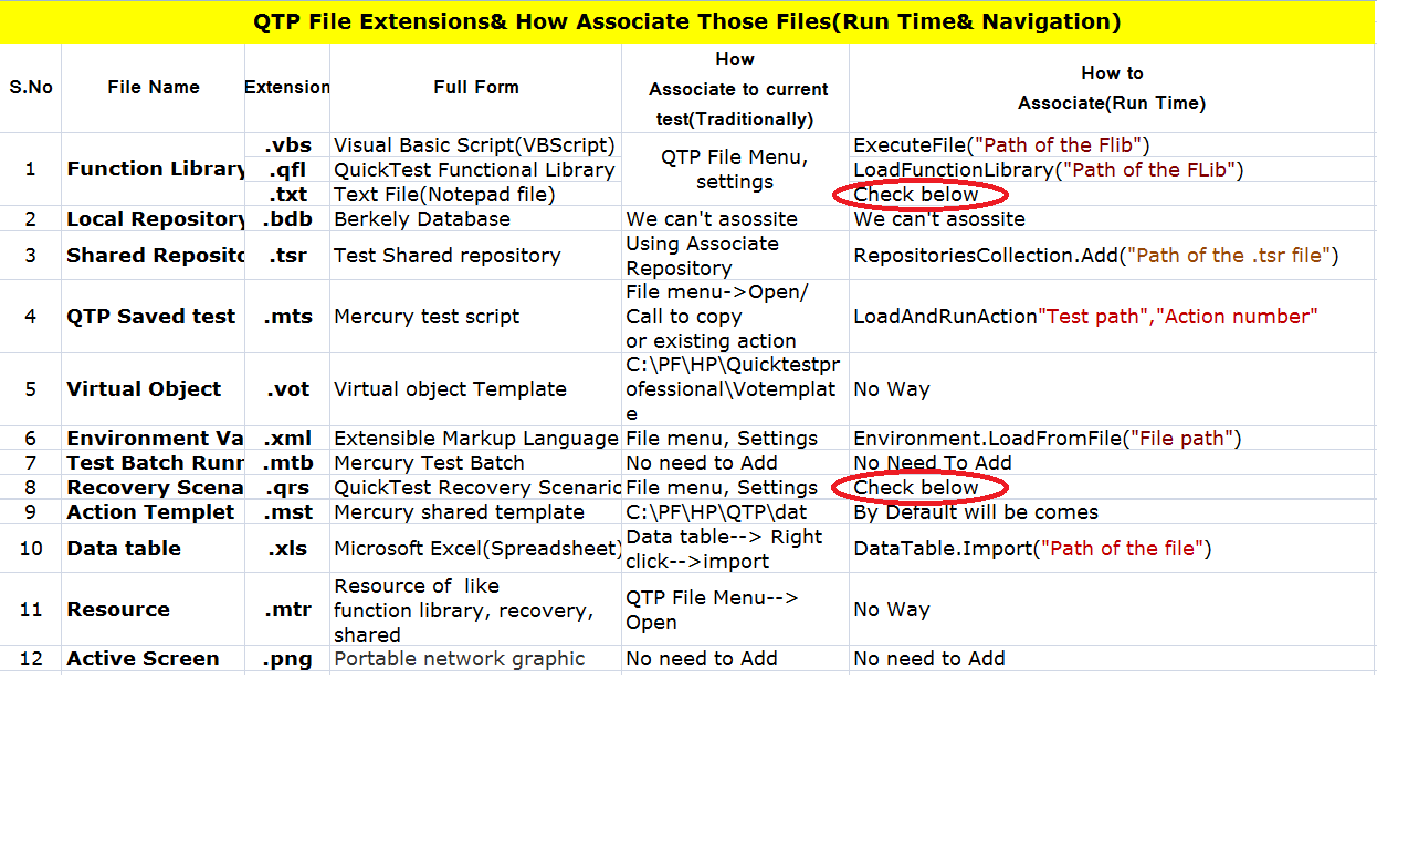 For Automation Testing Bed Qtp All Files Extensions How To